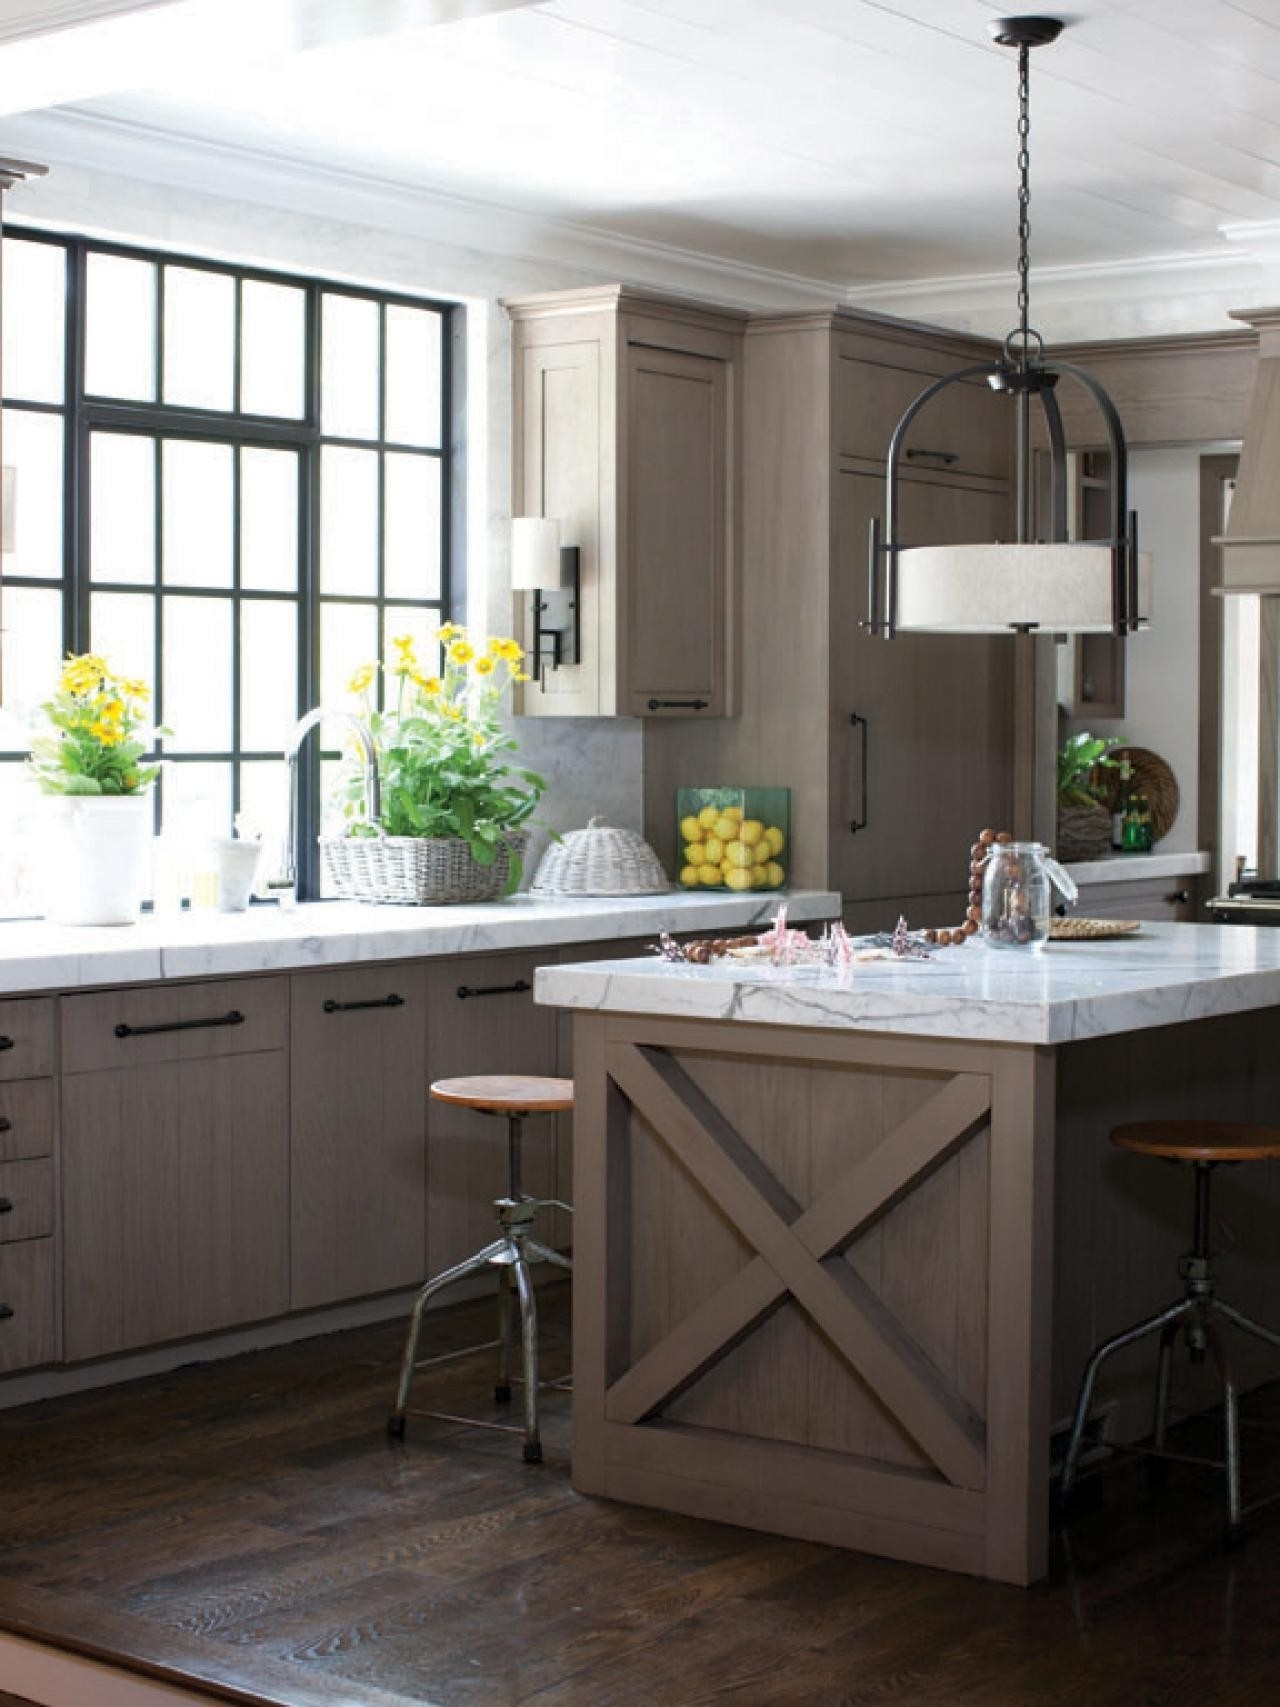 Popular Wrought Iron Kitchen Island Lighting Elegant Chandeliers Design Pertaining To Small Rustic Kitchen Chandeliers (View 14 of 20)